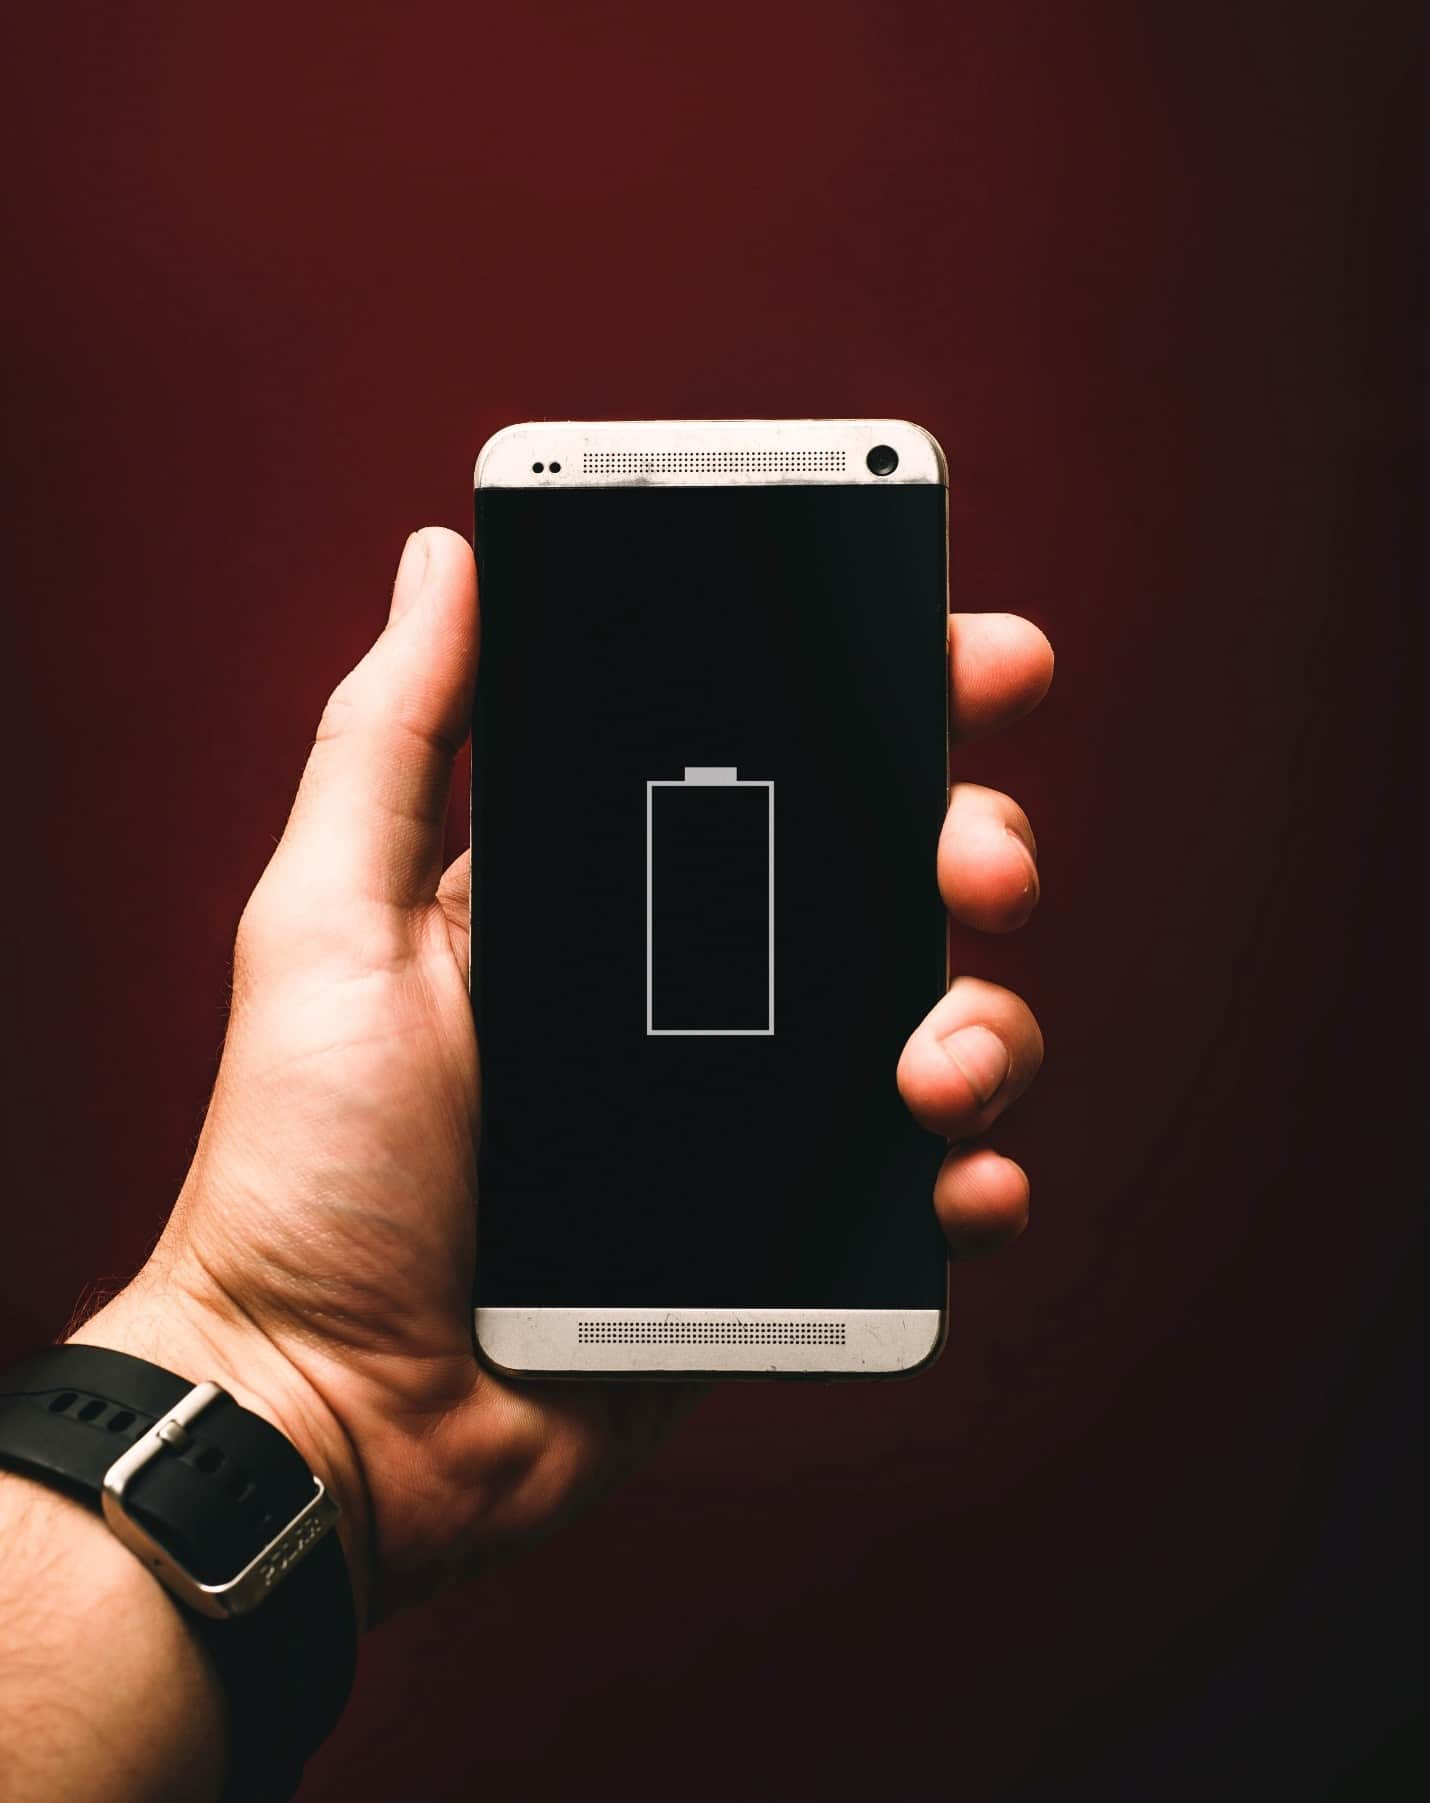 content/zh-cn/images/repository/isc/2020/9910/prolong-your-smartphone-battery-lifespan-1.jpg